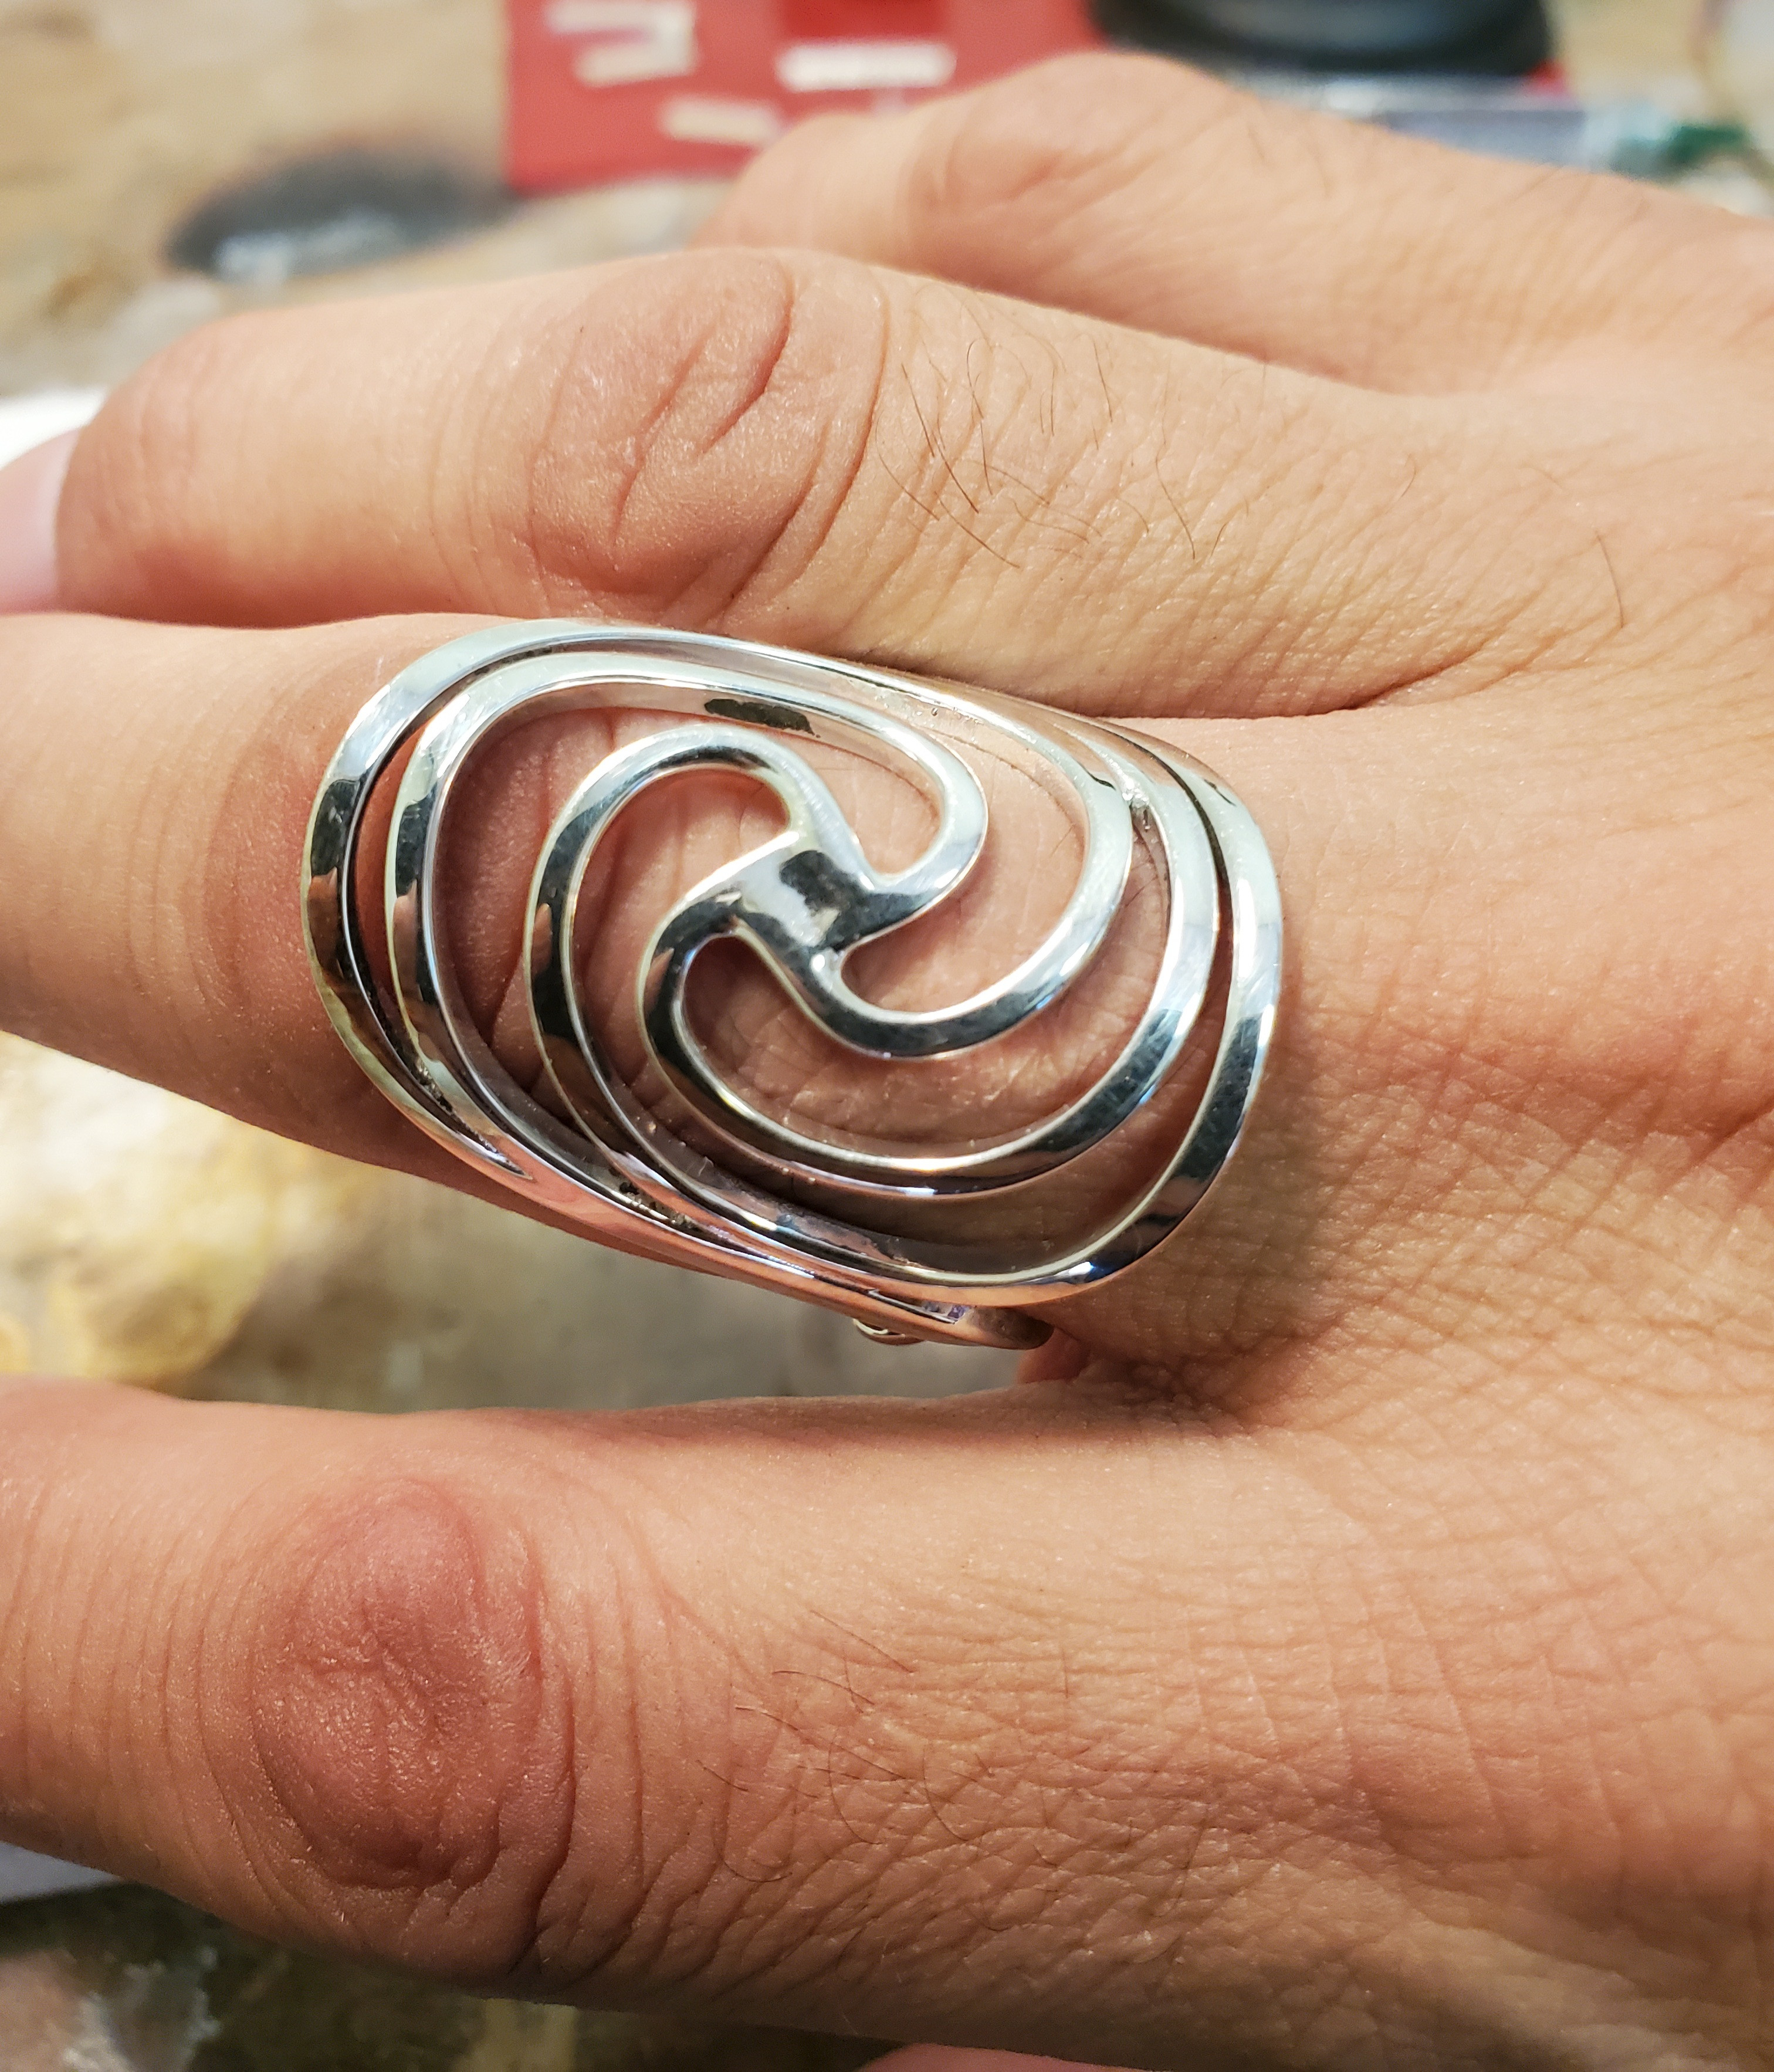 Adjustable wire silver ring-8/28 @9:30